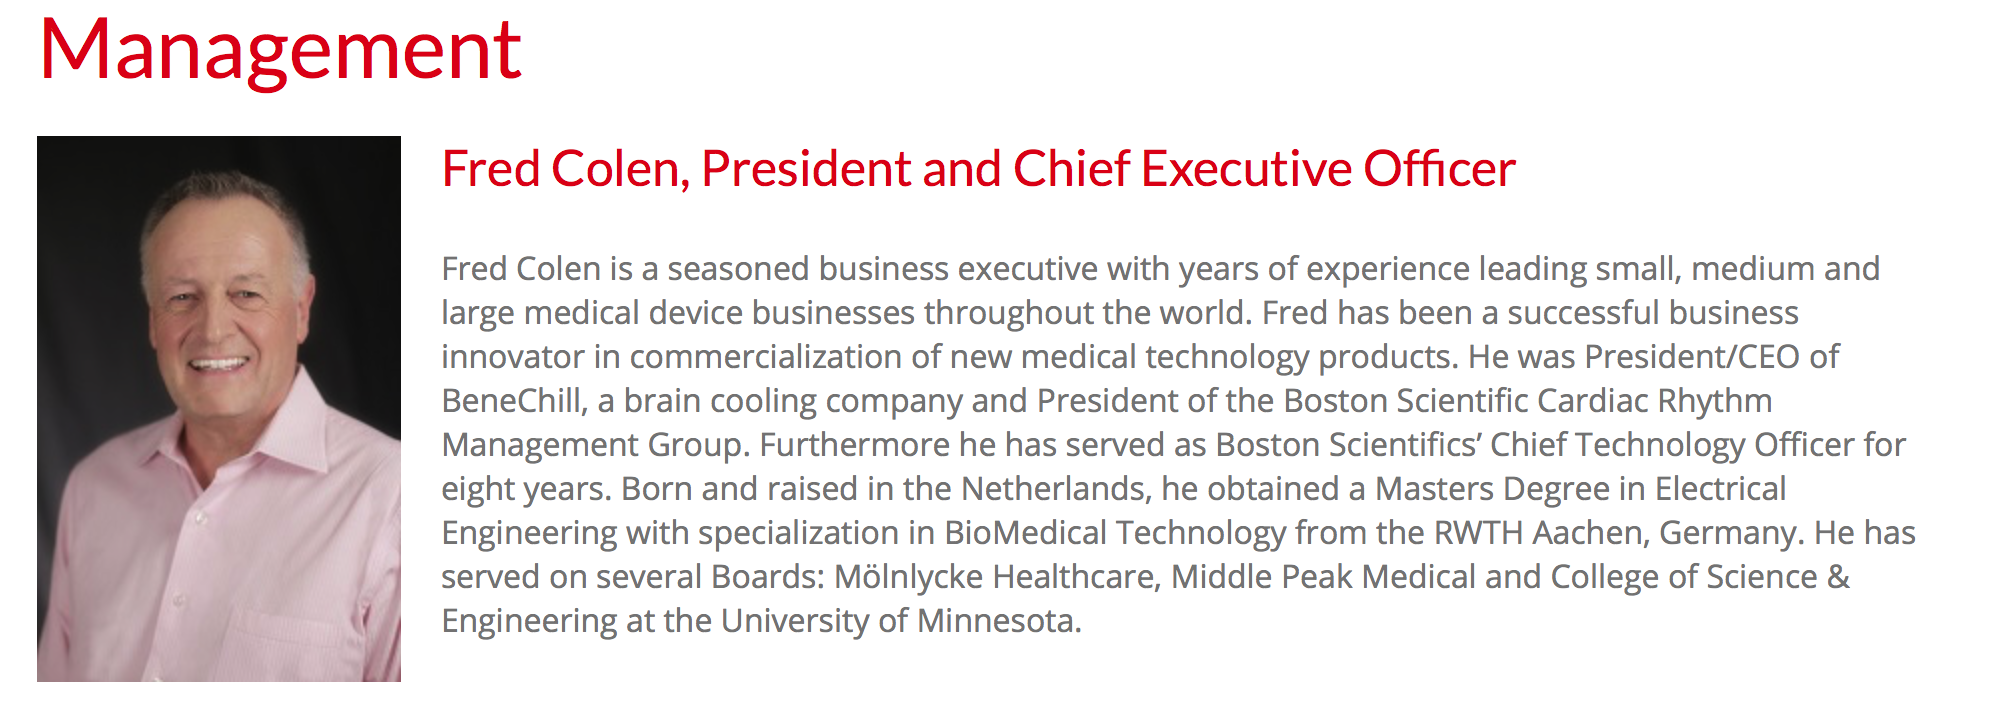 Fred Colen - President and CEO